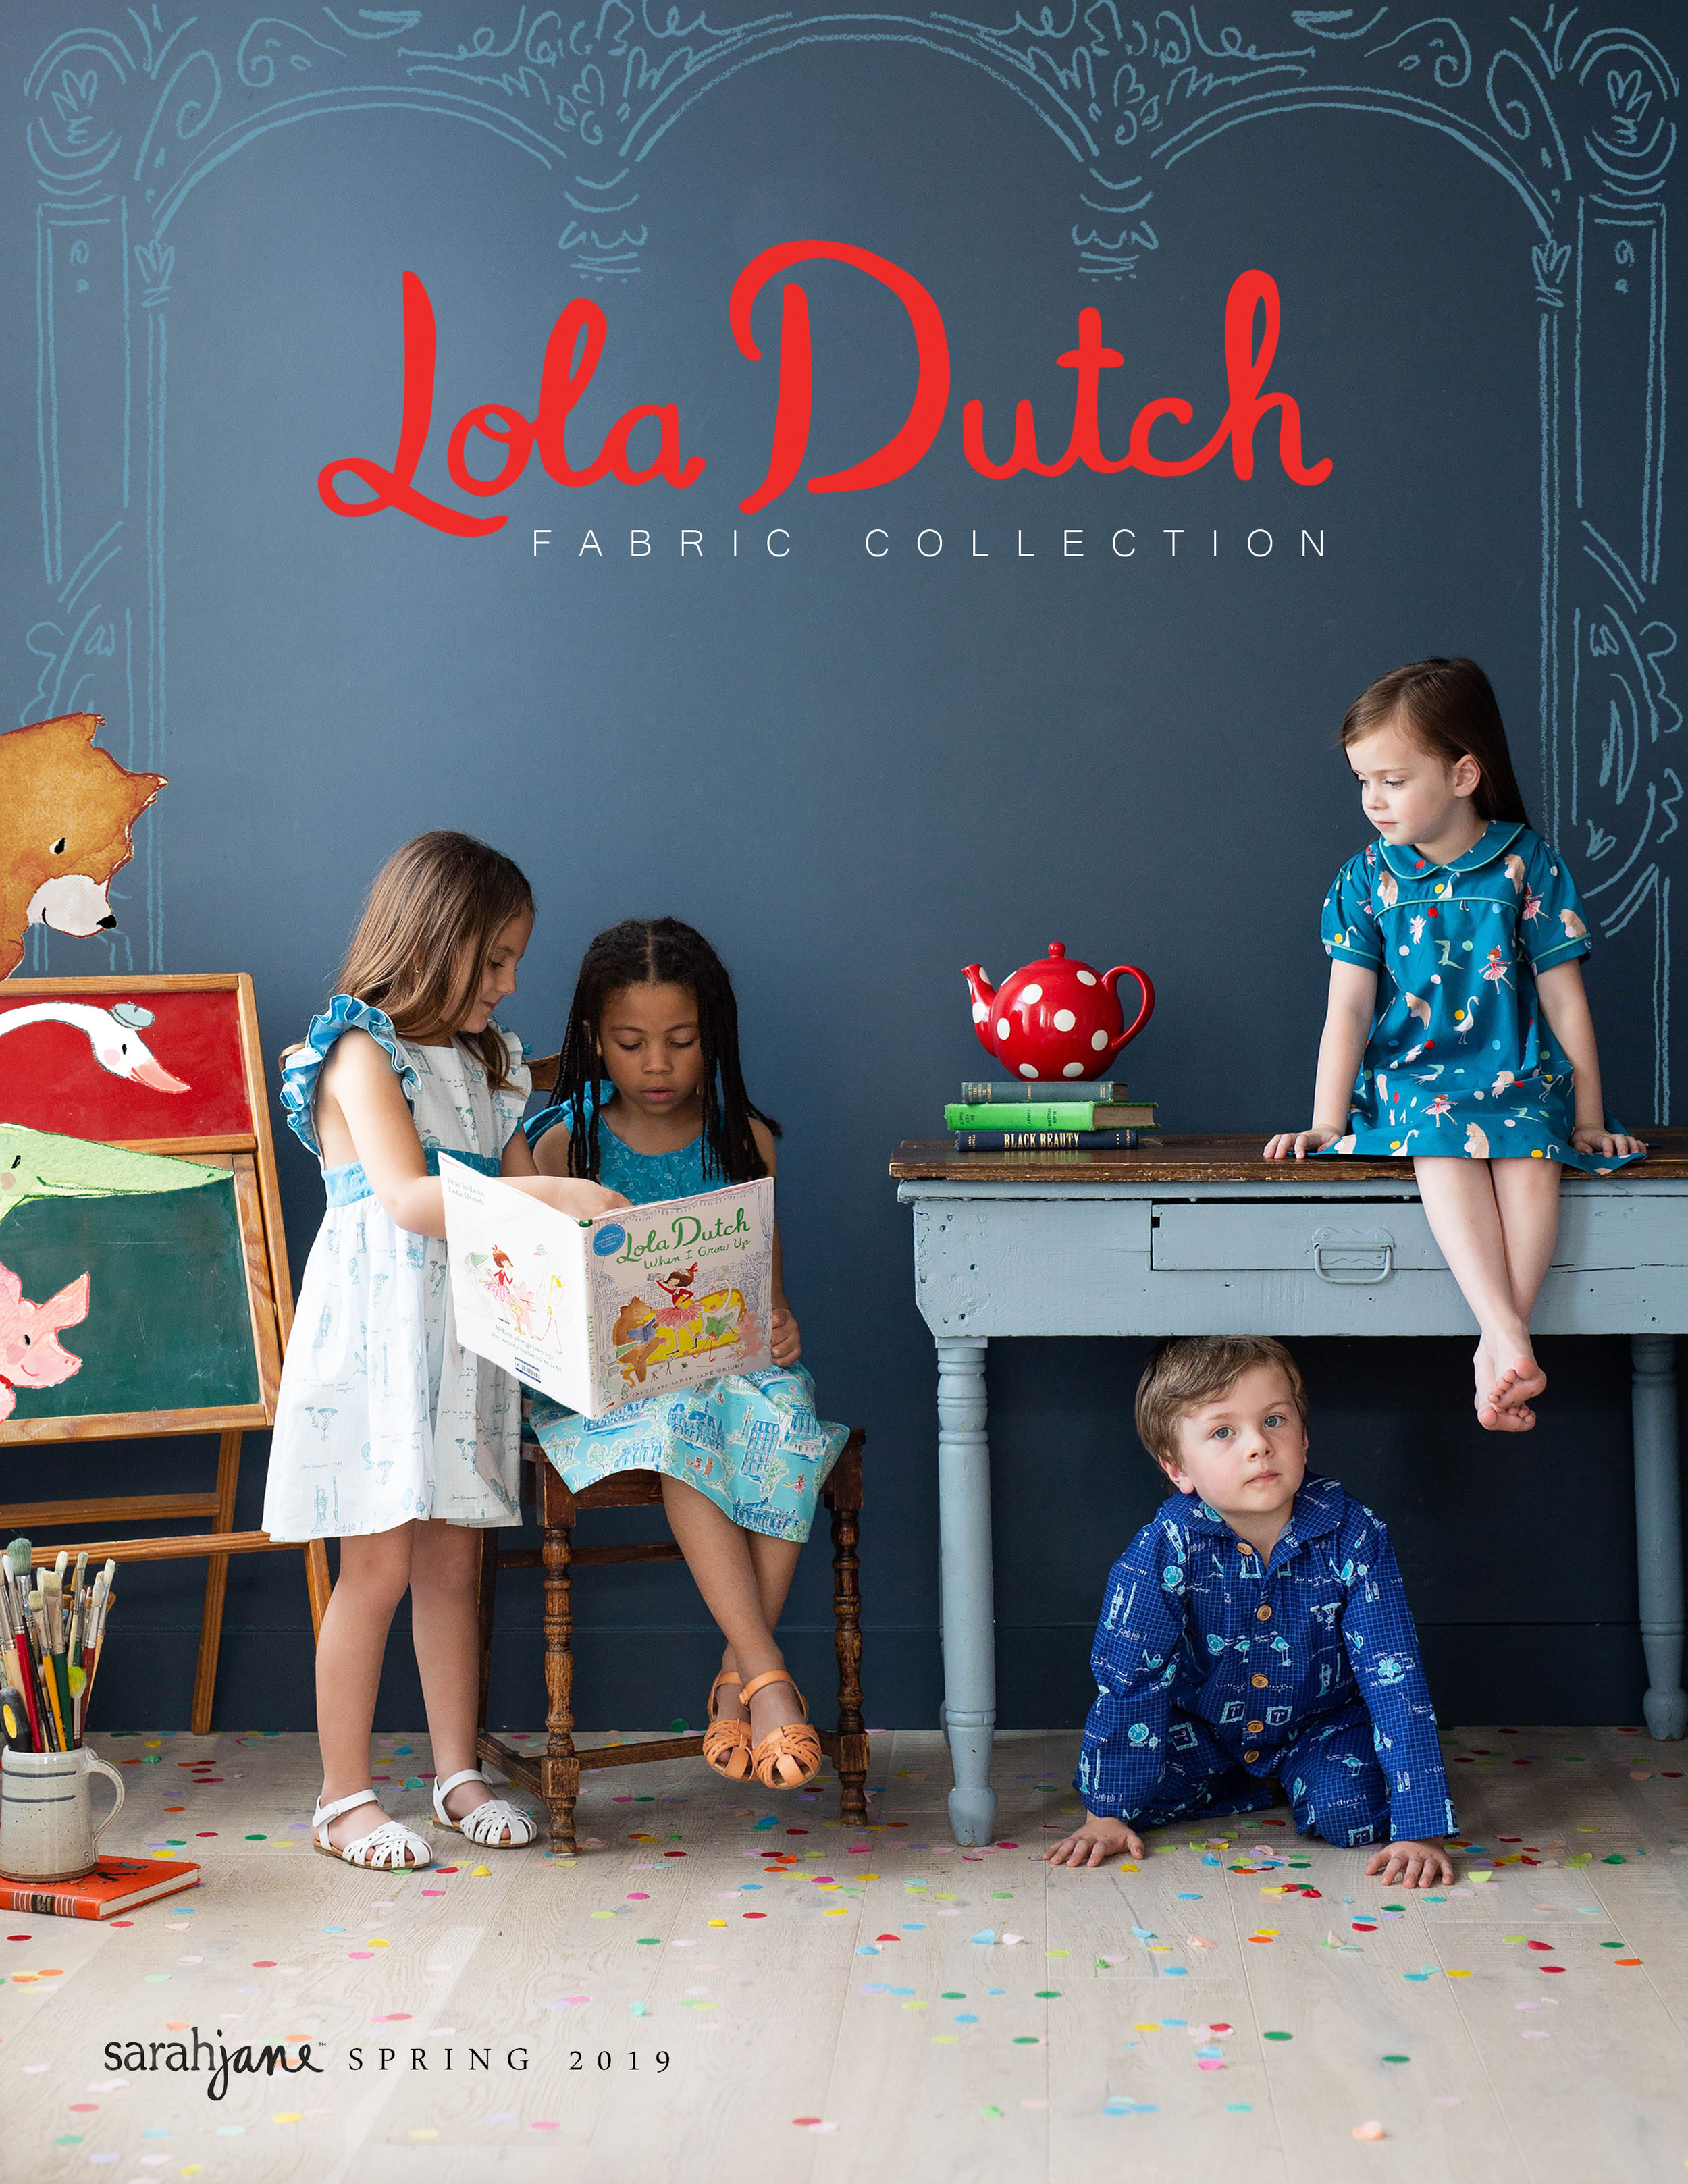 Lola Dutch Fabric Collection